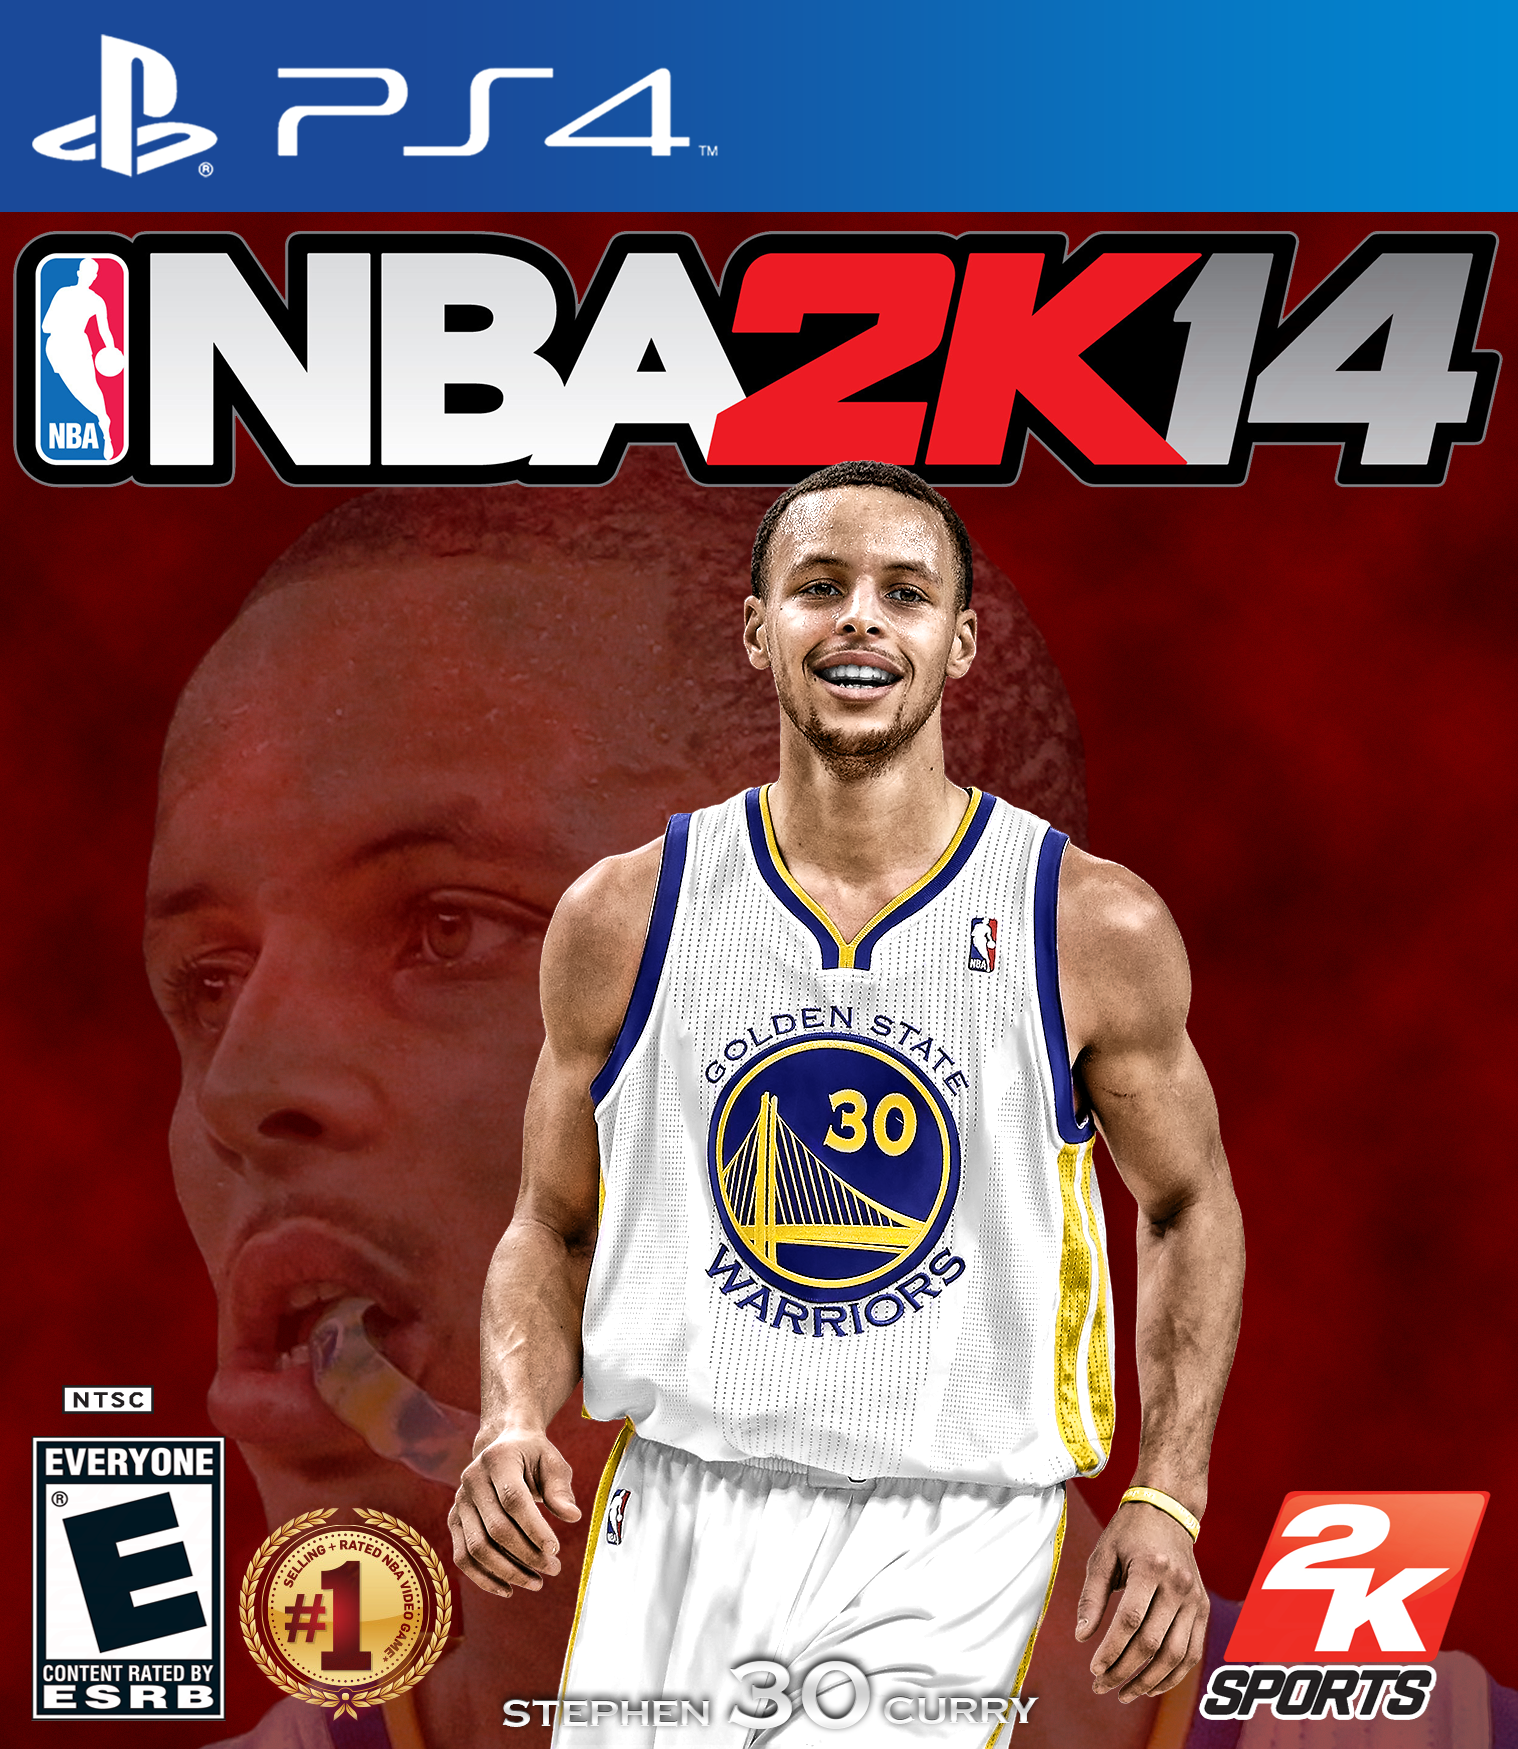 nba 2k14 curry cover by chronoxiong designs interfaces dvd covers 2013 ... Nba 2k14 Custom Covers Xbox